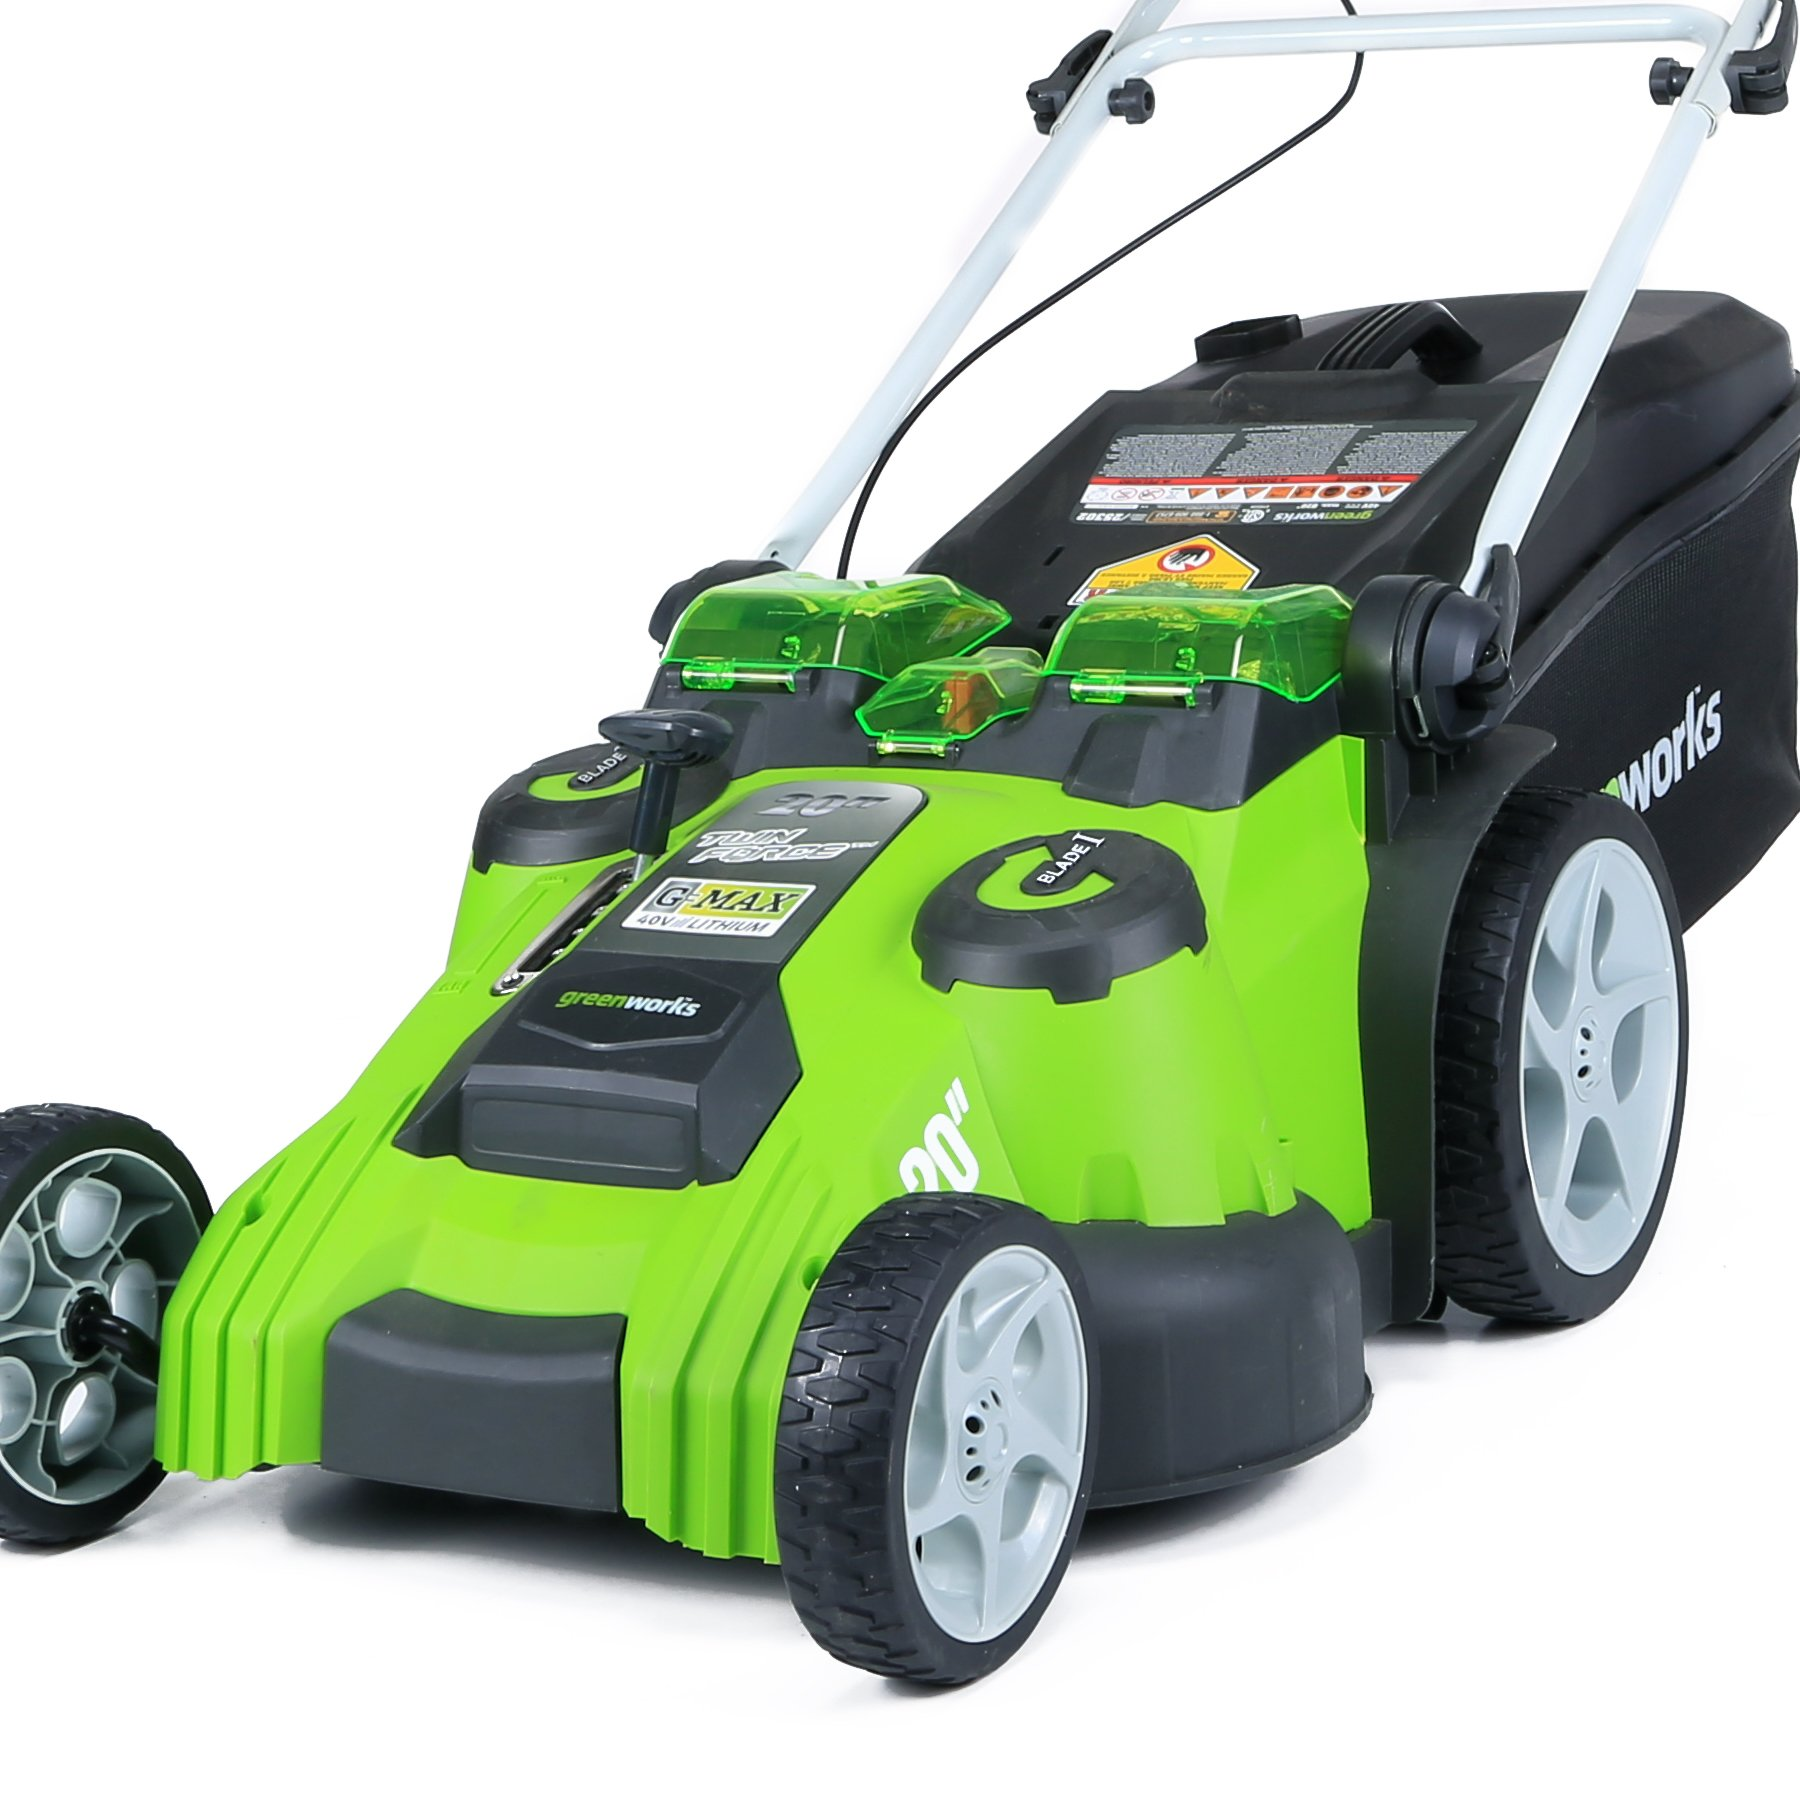 Greenworks 20-Inch 40V Twin Force Cordless Lawn Mower, 4.0 AH & 2.0 AH Batteries Included 25302 by Greenworks (Image #10)